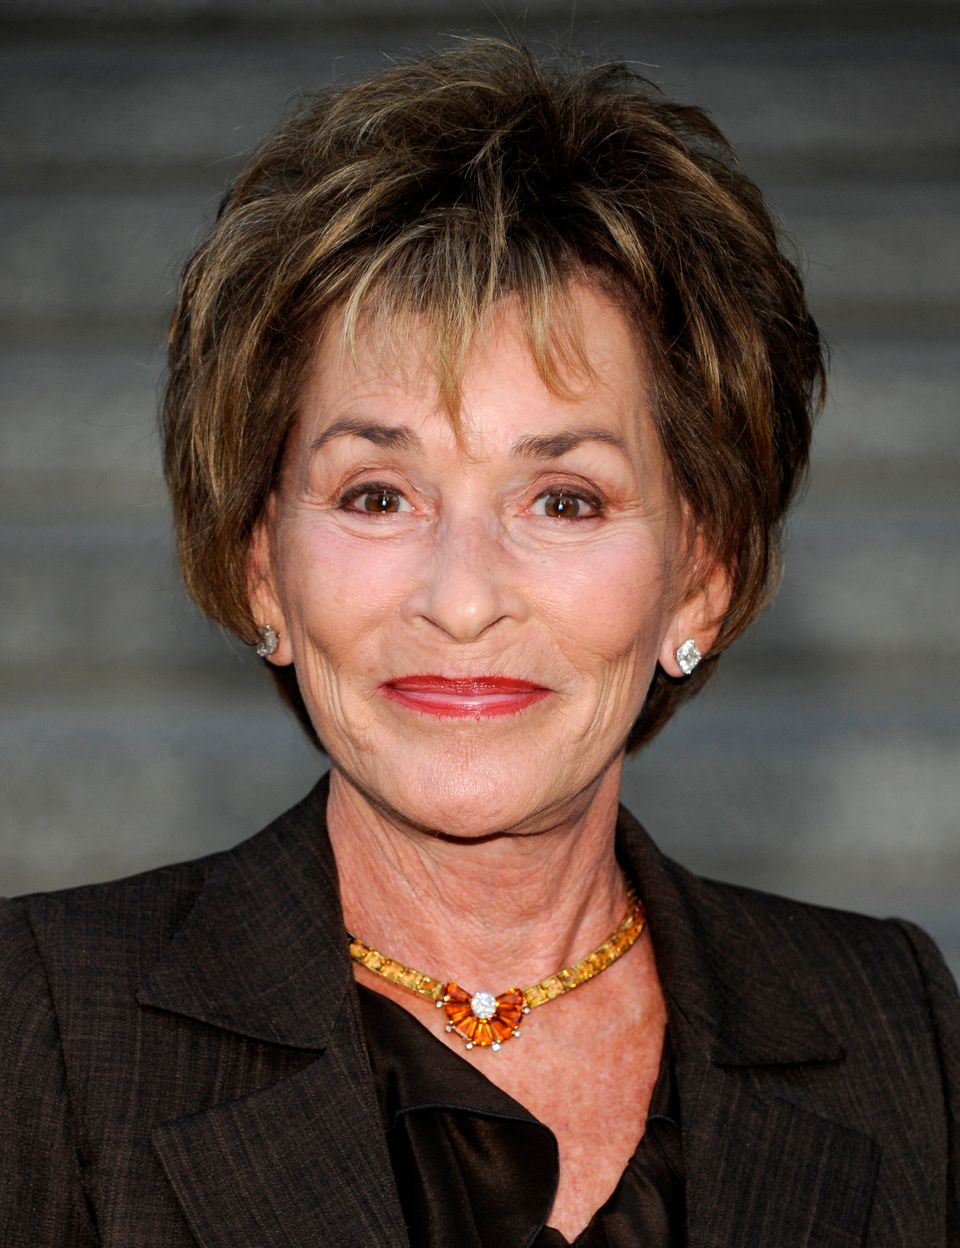 "The Honorable <a href=""http://en.wikipedia.org/wiki/Judith_Sheindlin"" target=""_hplink"">Judge Judy</a> obviously made an error"